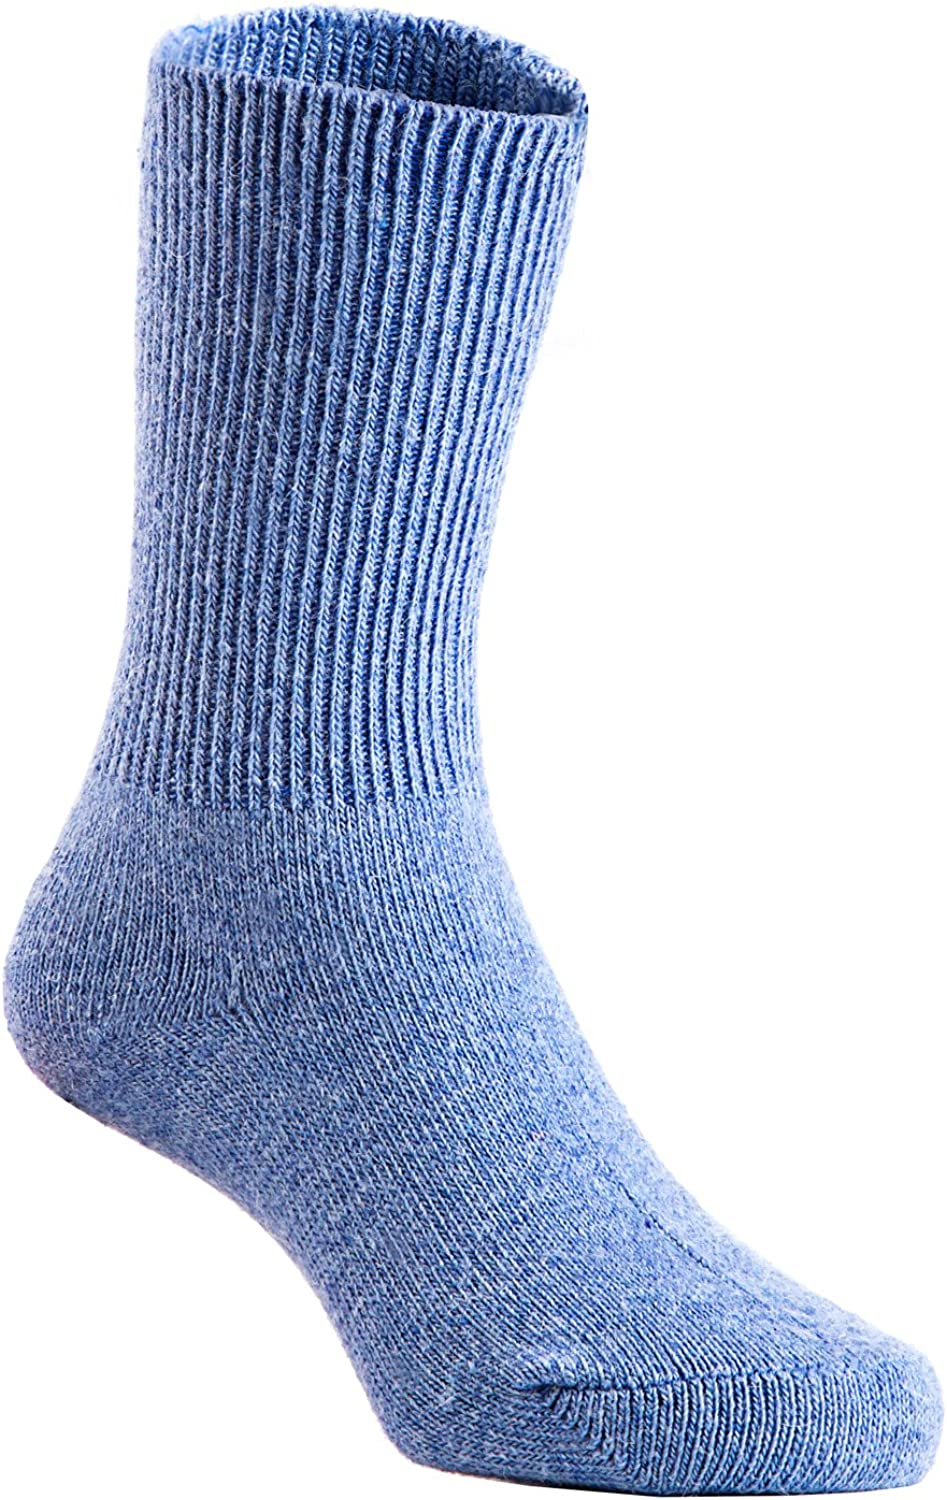 Lian LifeStyle Children 3 or 6 Pairs//Colors Pack Wool Socks Plain Color